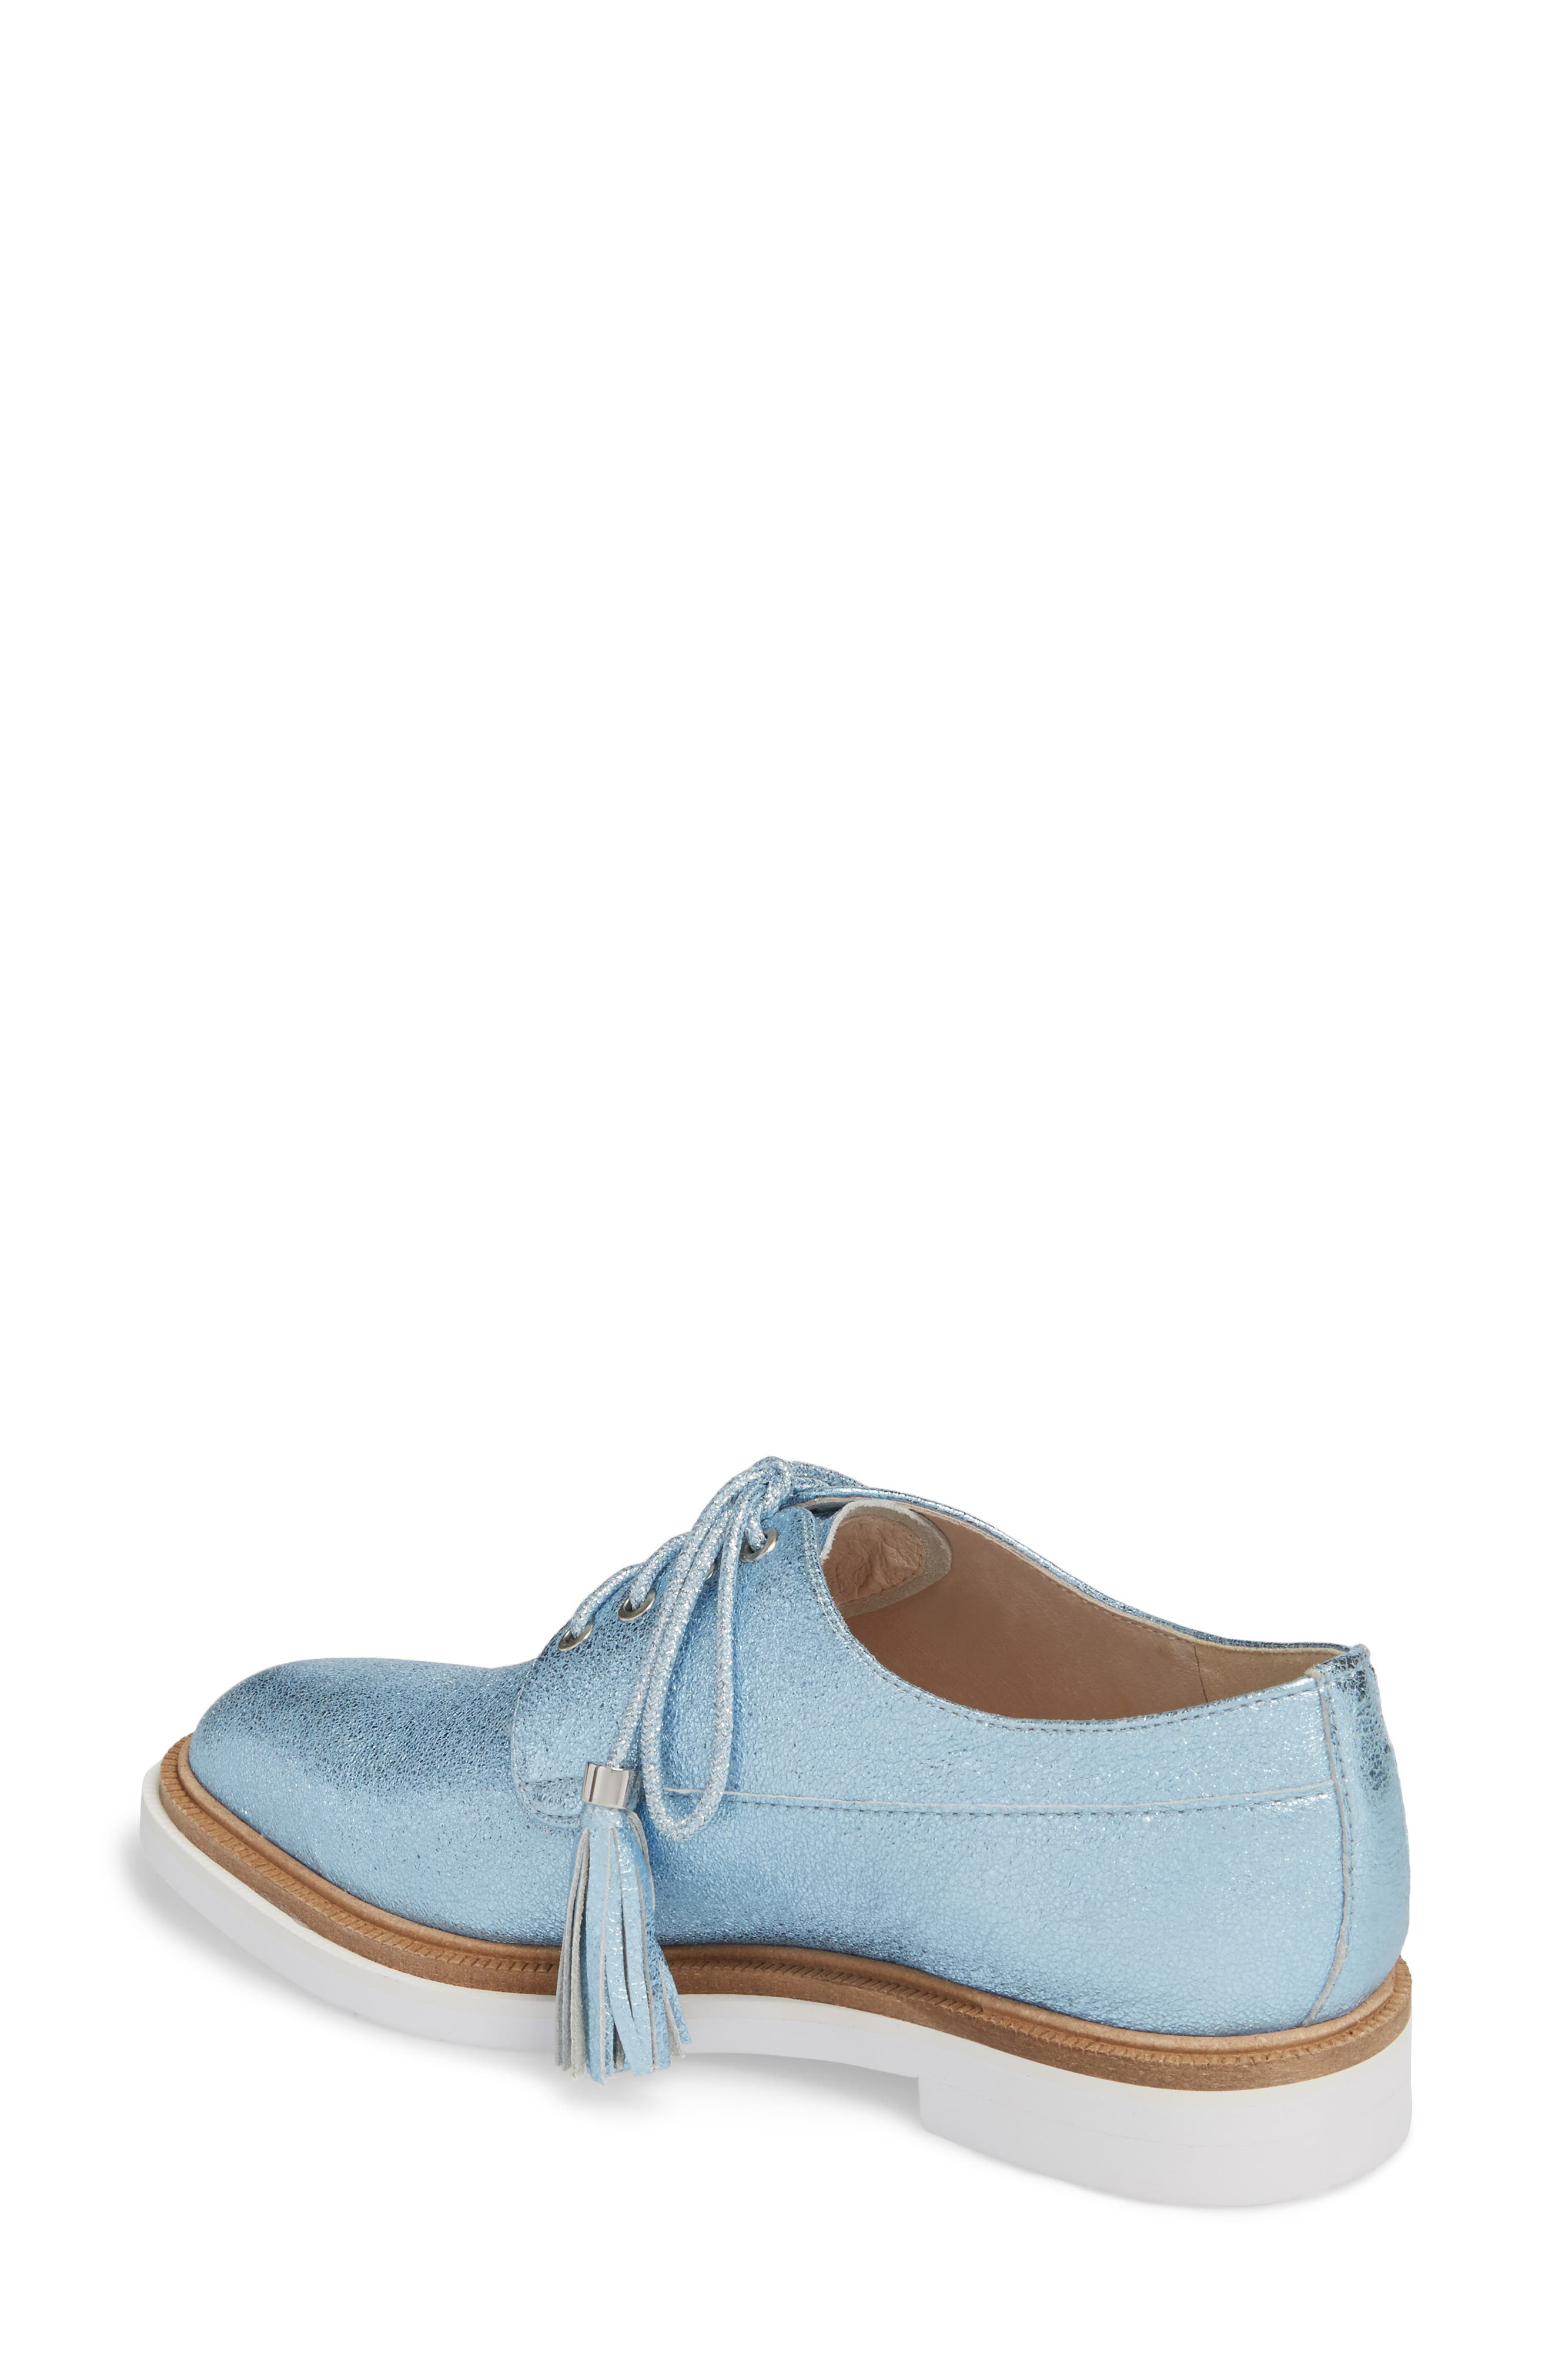 Annie Oxford,                             Alternate thumbnail 2, color,                             Blue Metallic Leather